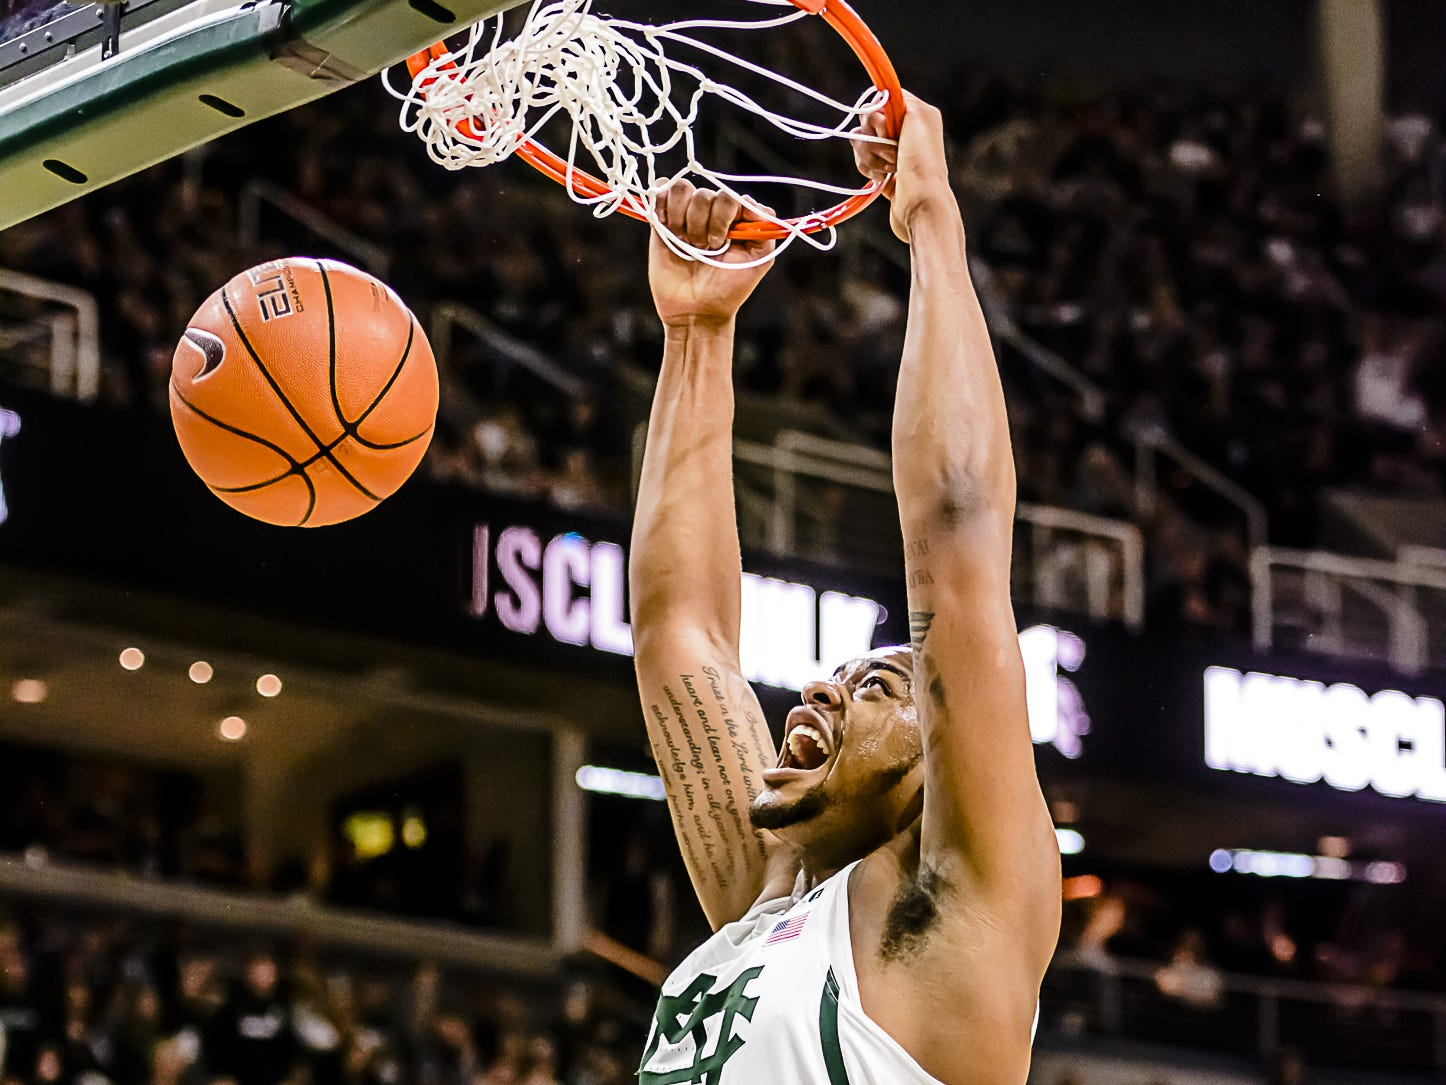 Nick Ward of MSU slams the ball home after an alley-oop feed from Cassius Winston in the 1st half of their game with Wisconsin Sunday February 26, 2017 in East Lansing.  KEVIN W. FOWLER PHOTO